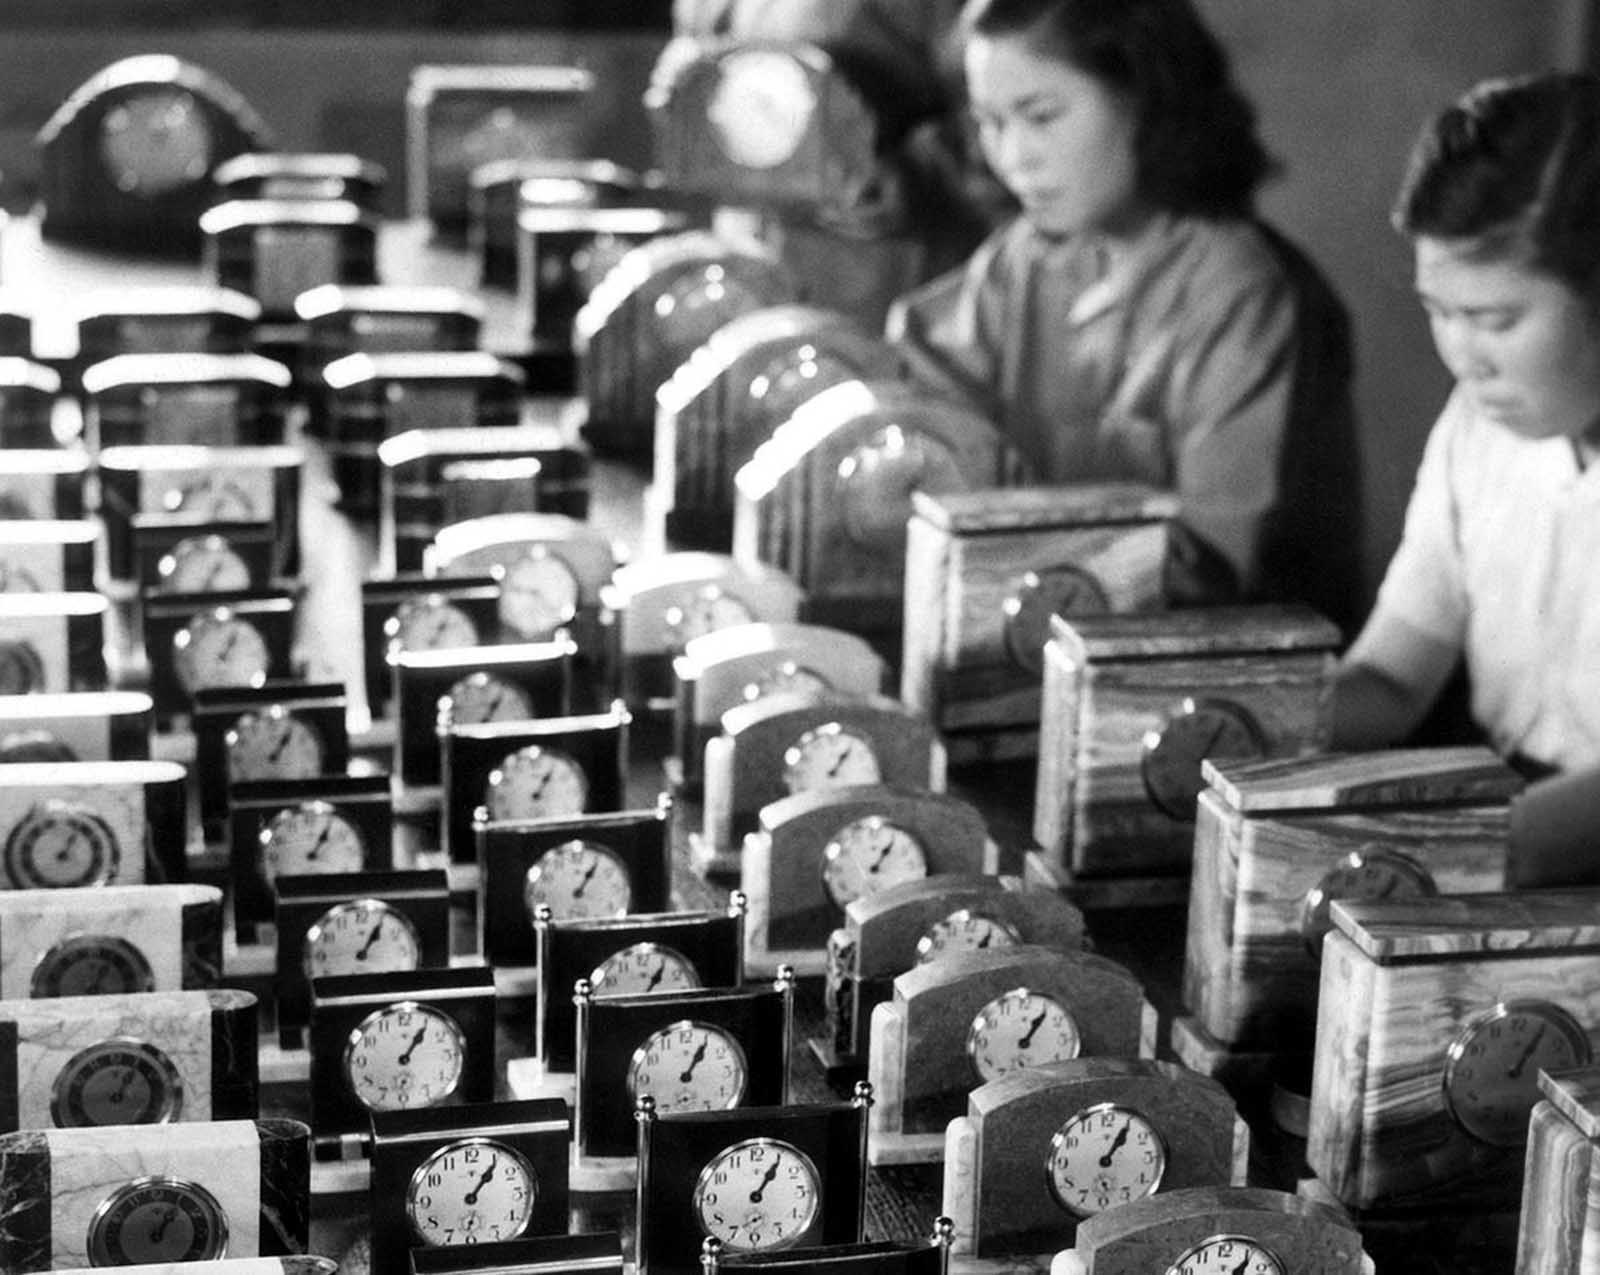 Clocks are being readied for export to Allied countries, shown as collateral for imported goods needed by Japan. Thirty-four Japanese factories produced 123,000 clocks during April of 1946. Photo taken on June 25, 1946.